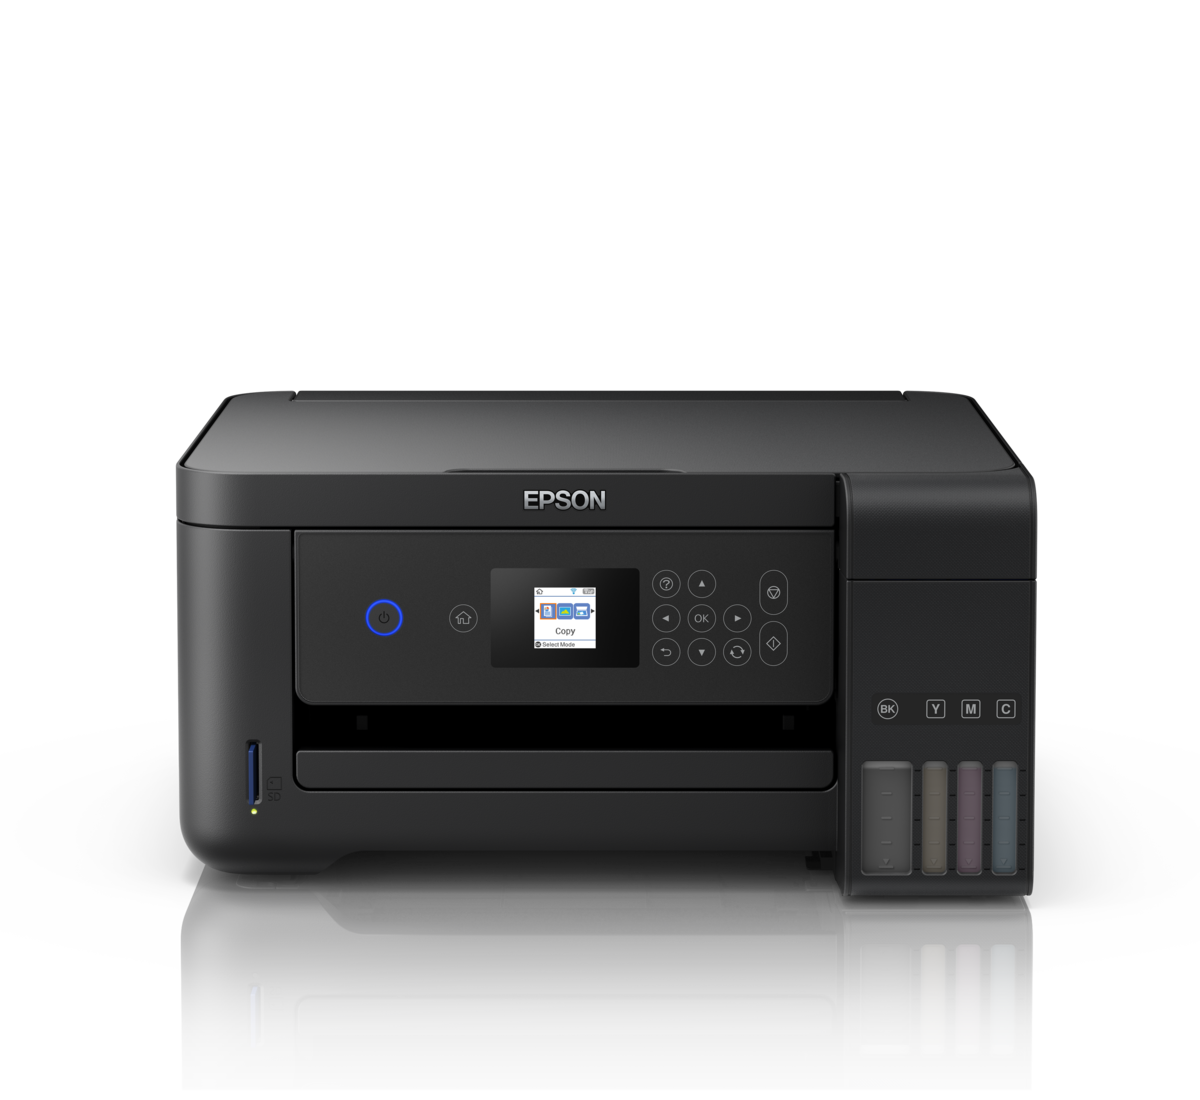 Epson L-4160 Multifunction Color Printer